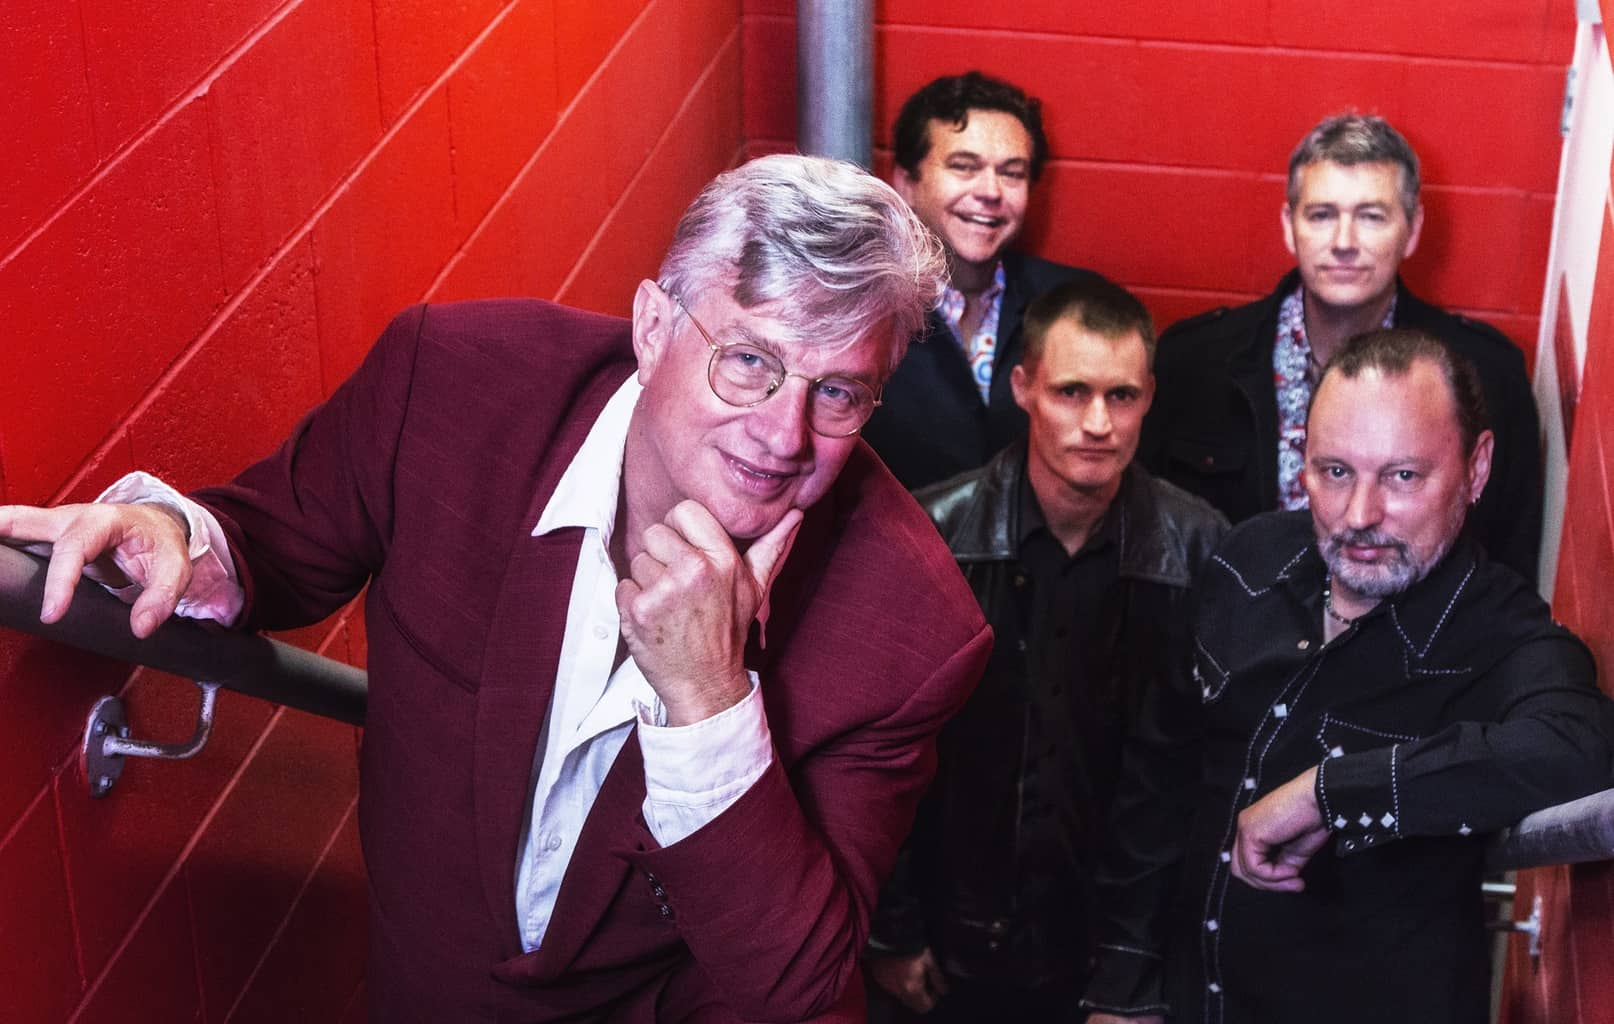 Scene News: Celebrate 40th Anniversary of The Nips are Getting Bigger with Mental As Anything this Sunday at MEMO Music Hall St Kilda